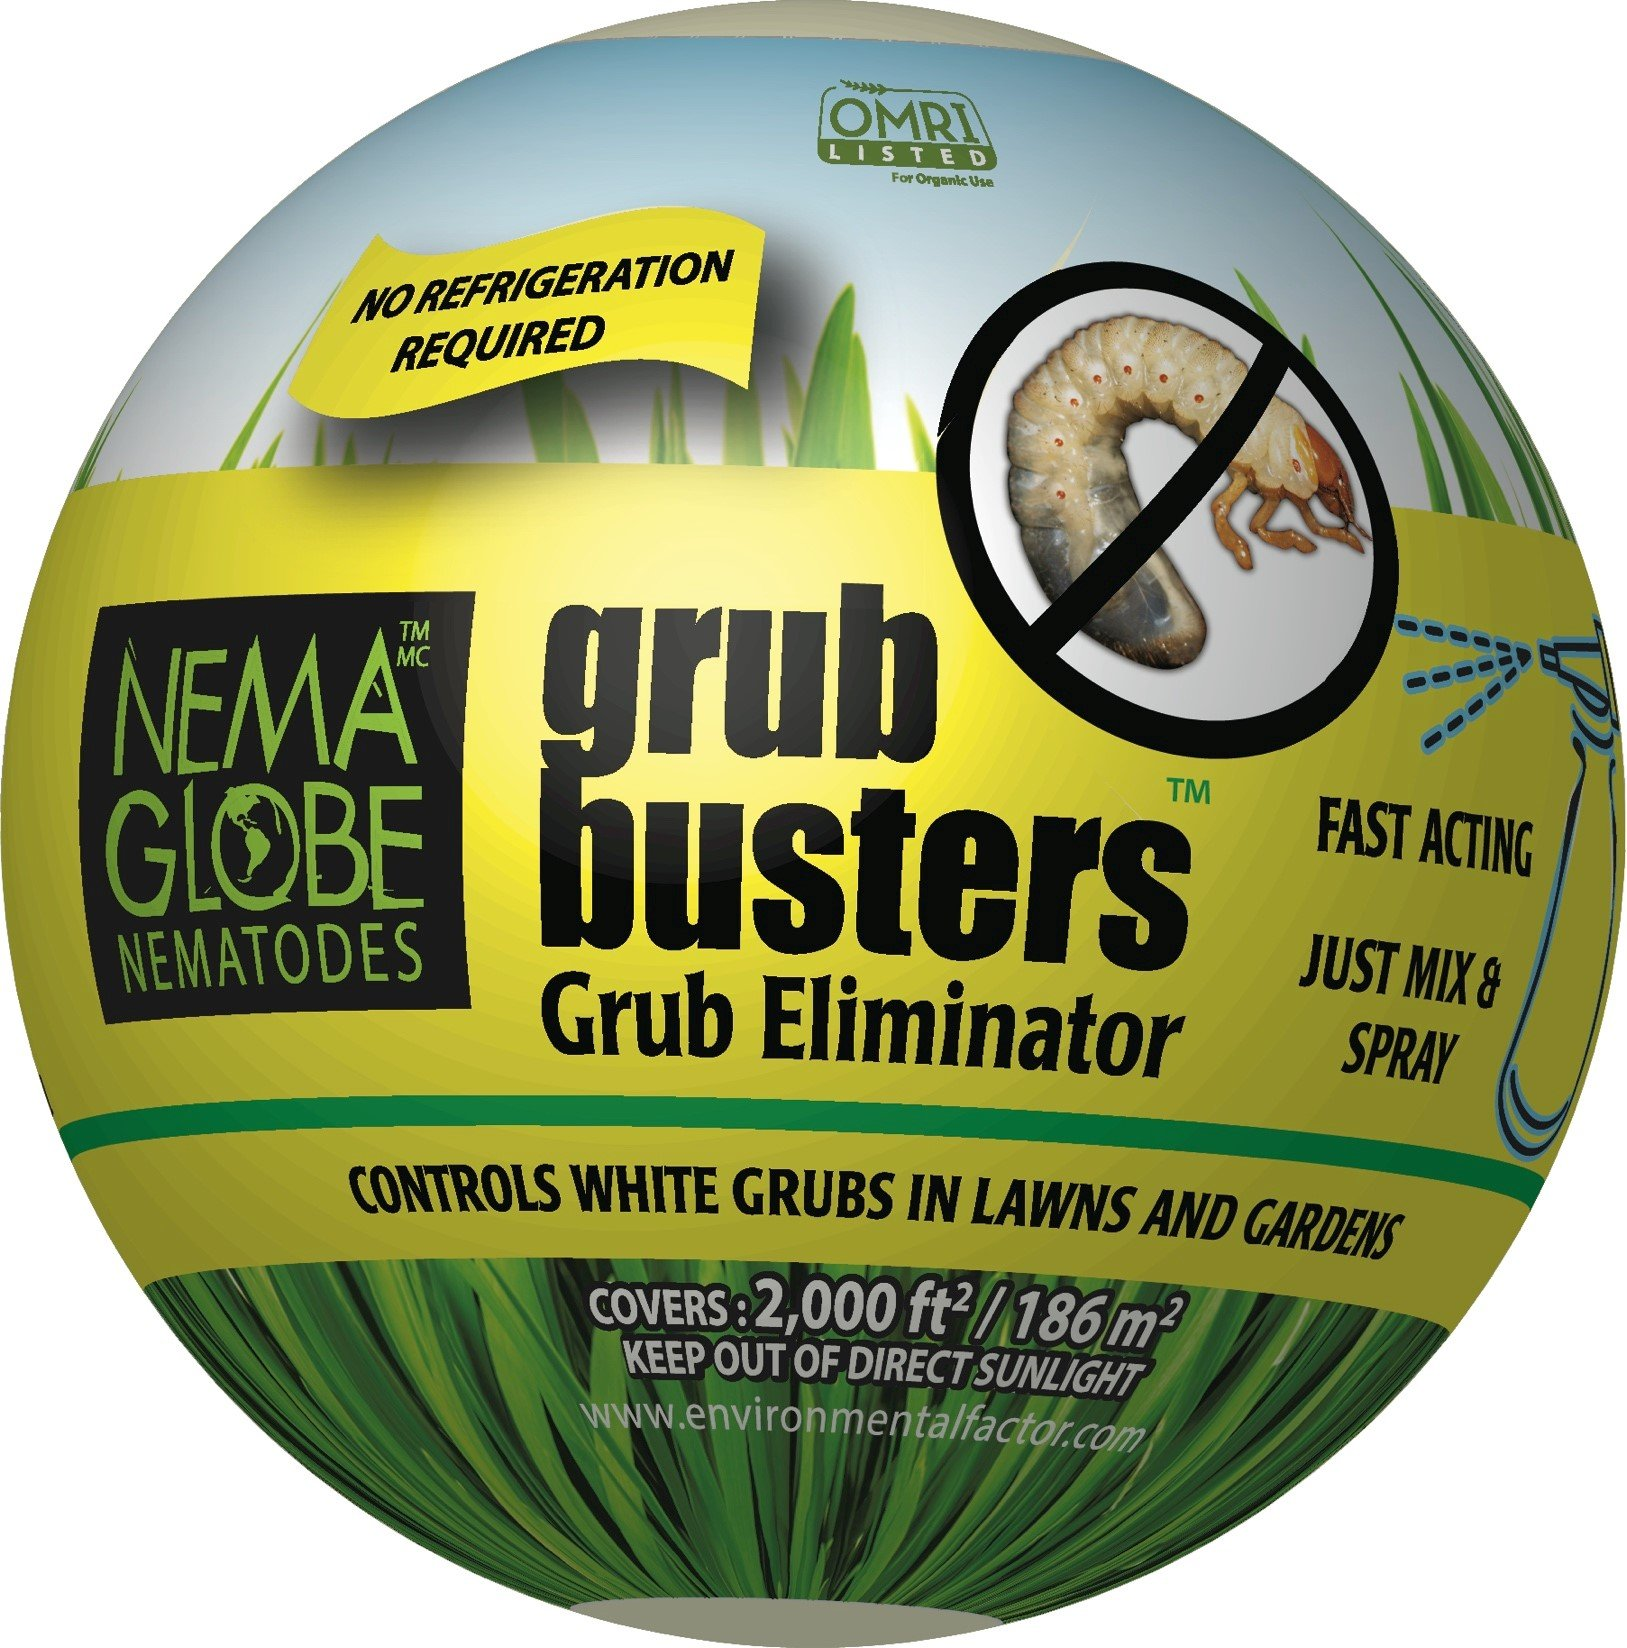 60 Million Beneficial Nematodes (H.bacteriophora) - Nema Globe Grub Buster for Pest Control - New ''No Refrigeration Required'' Formula by Nemaglobe